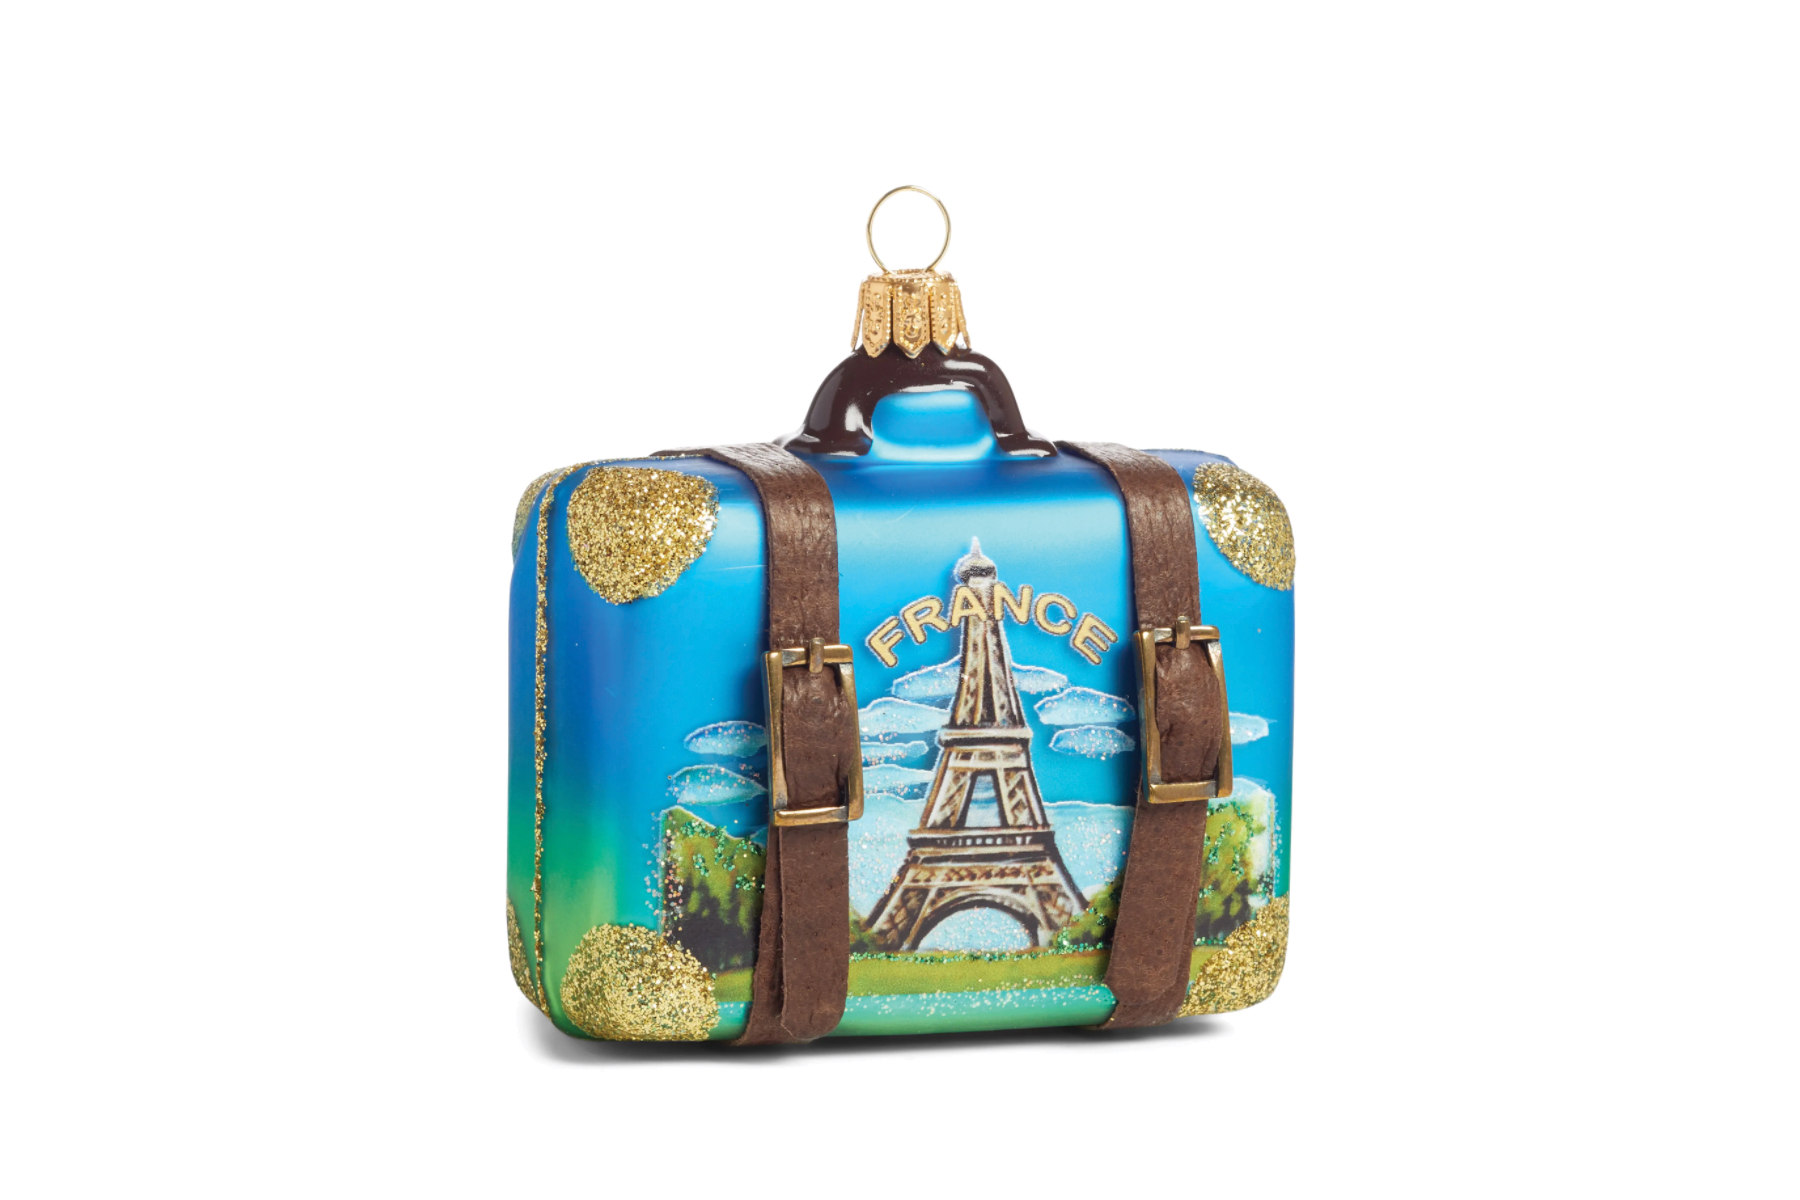 Holiday ornament of a travel suitcase with France motif